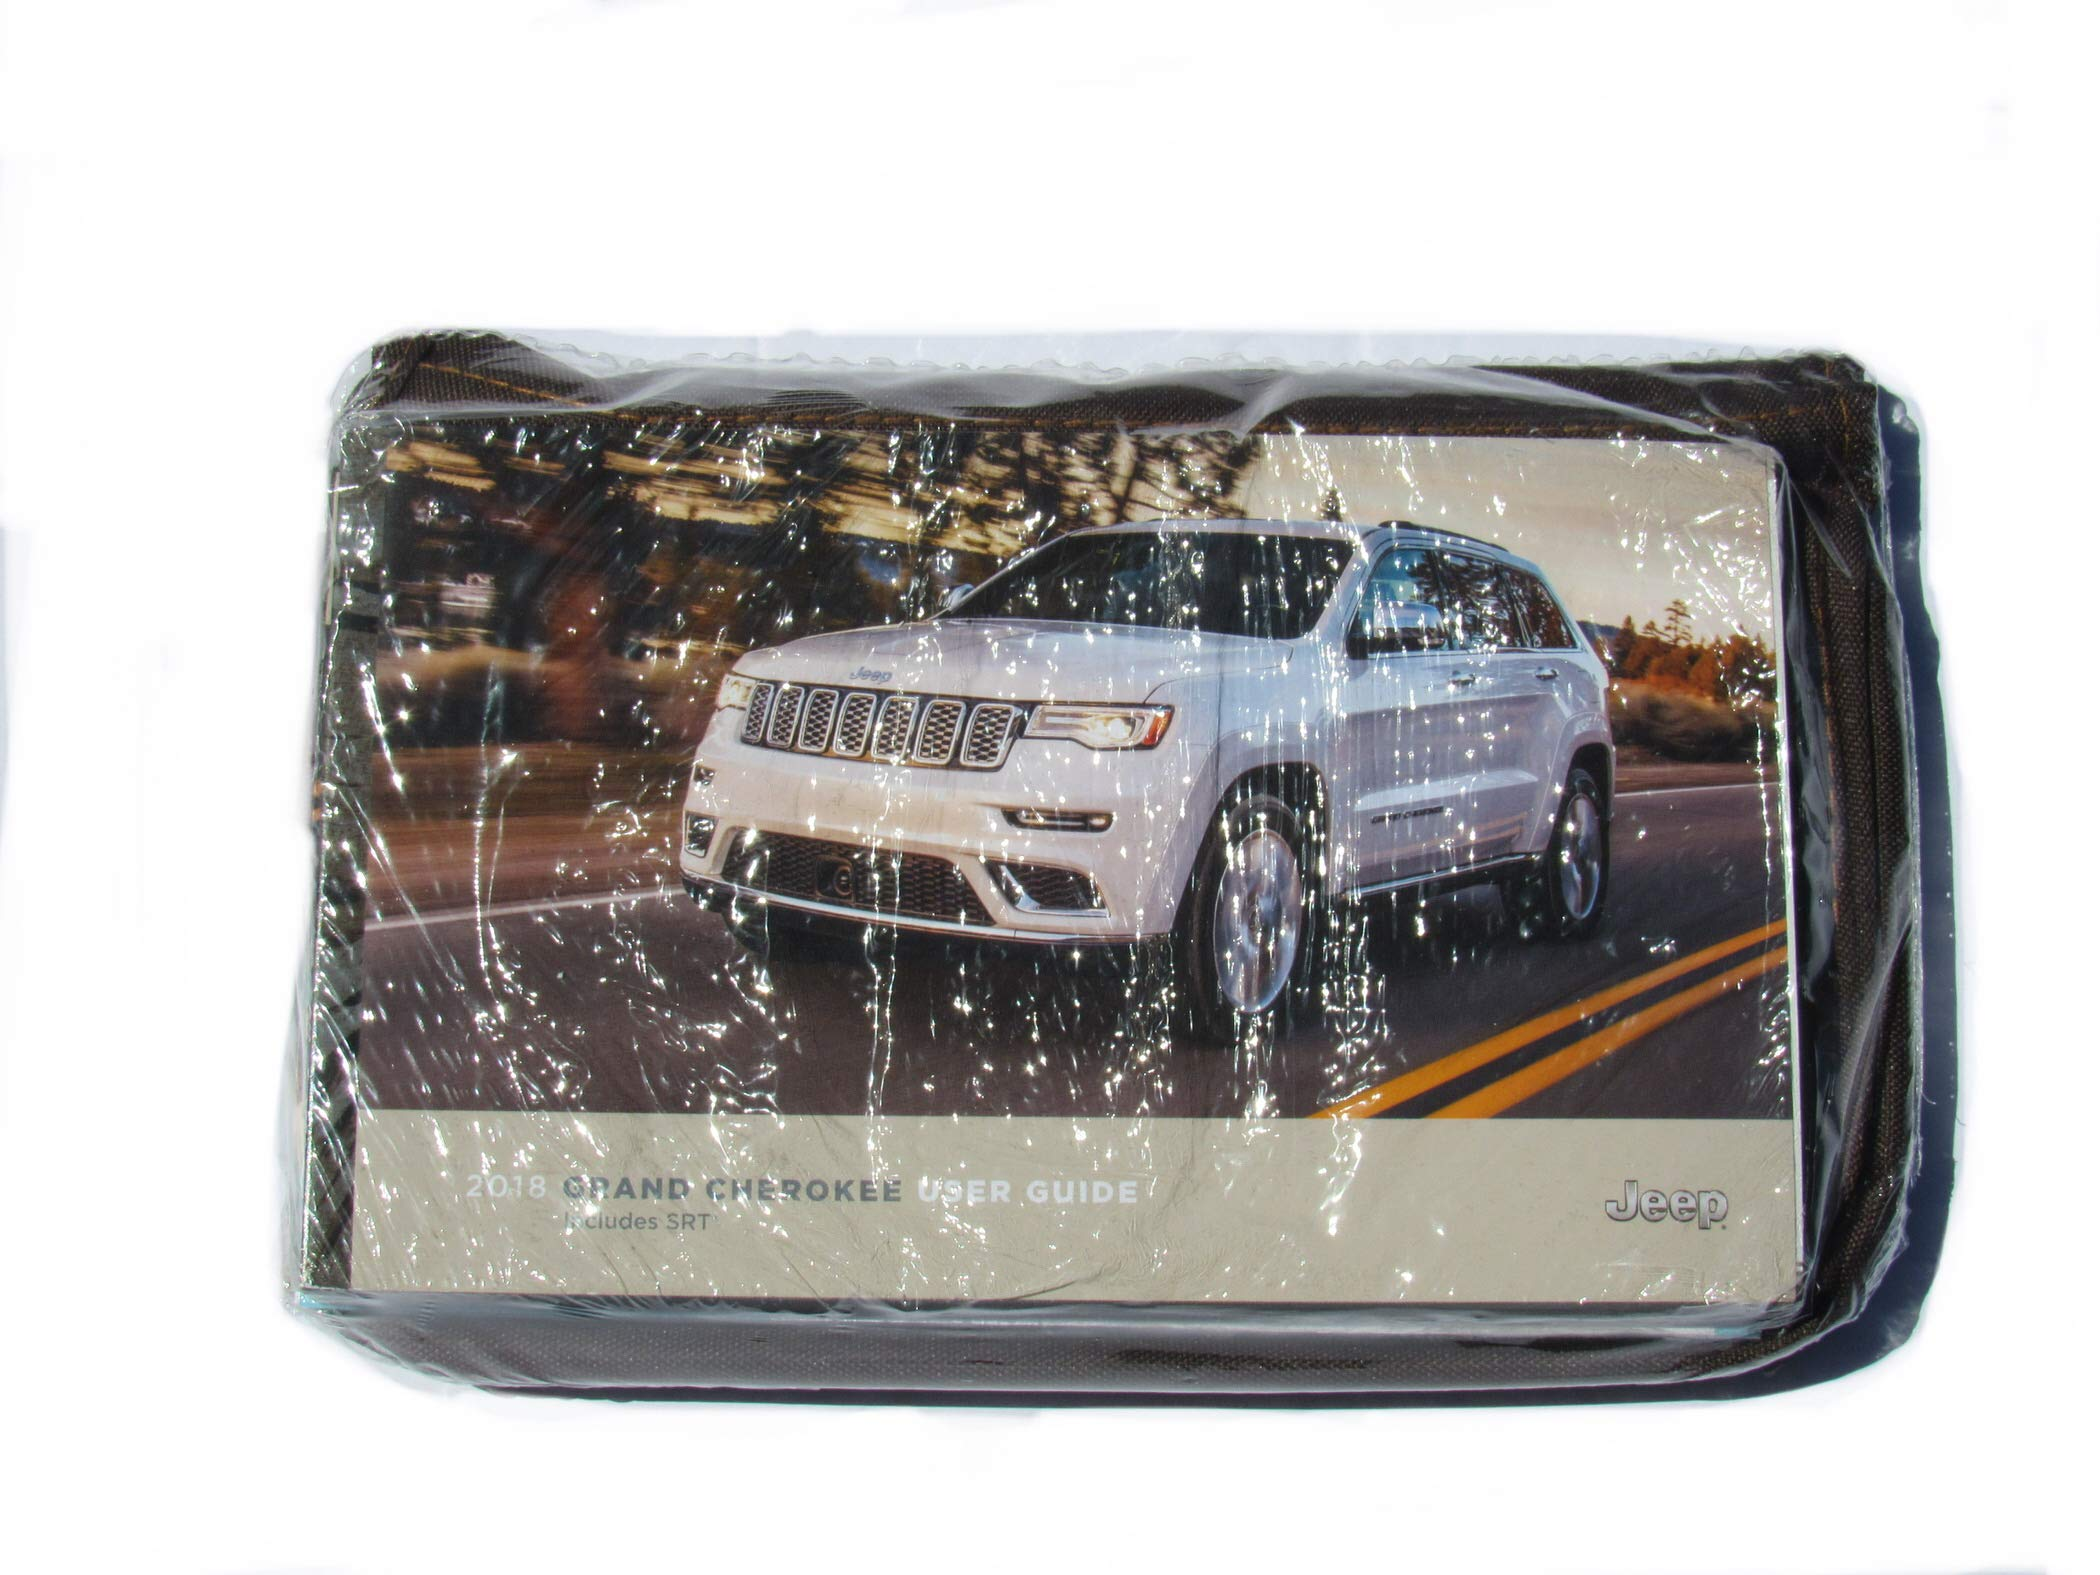 2018 Jeep Grand Cherokee Owners Manual